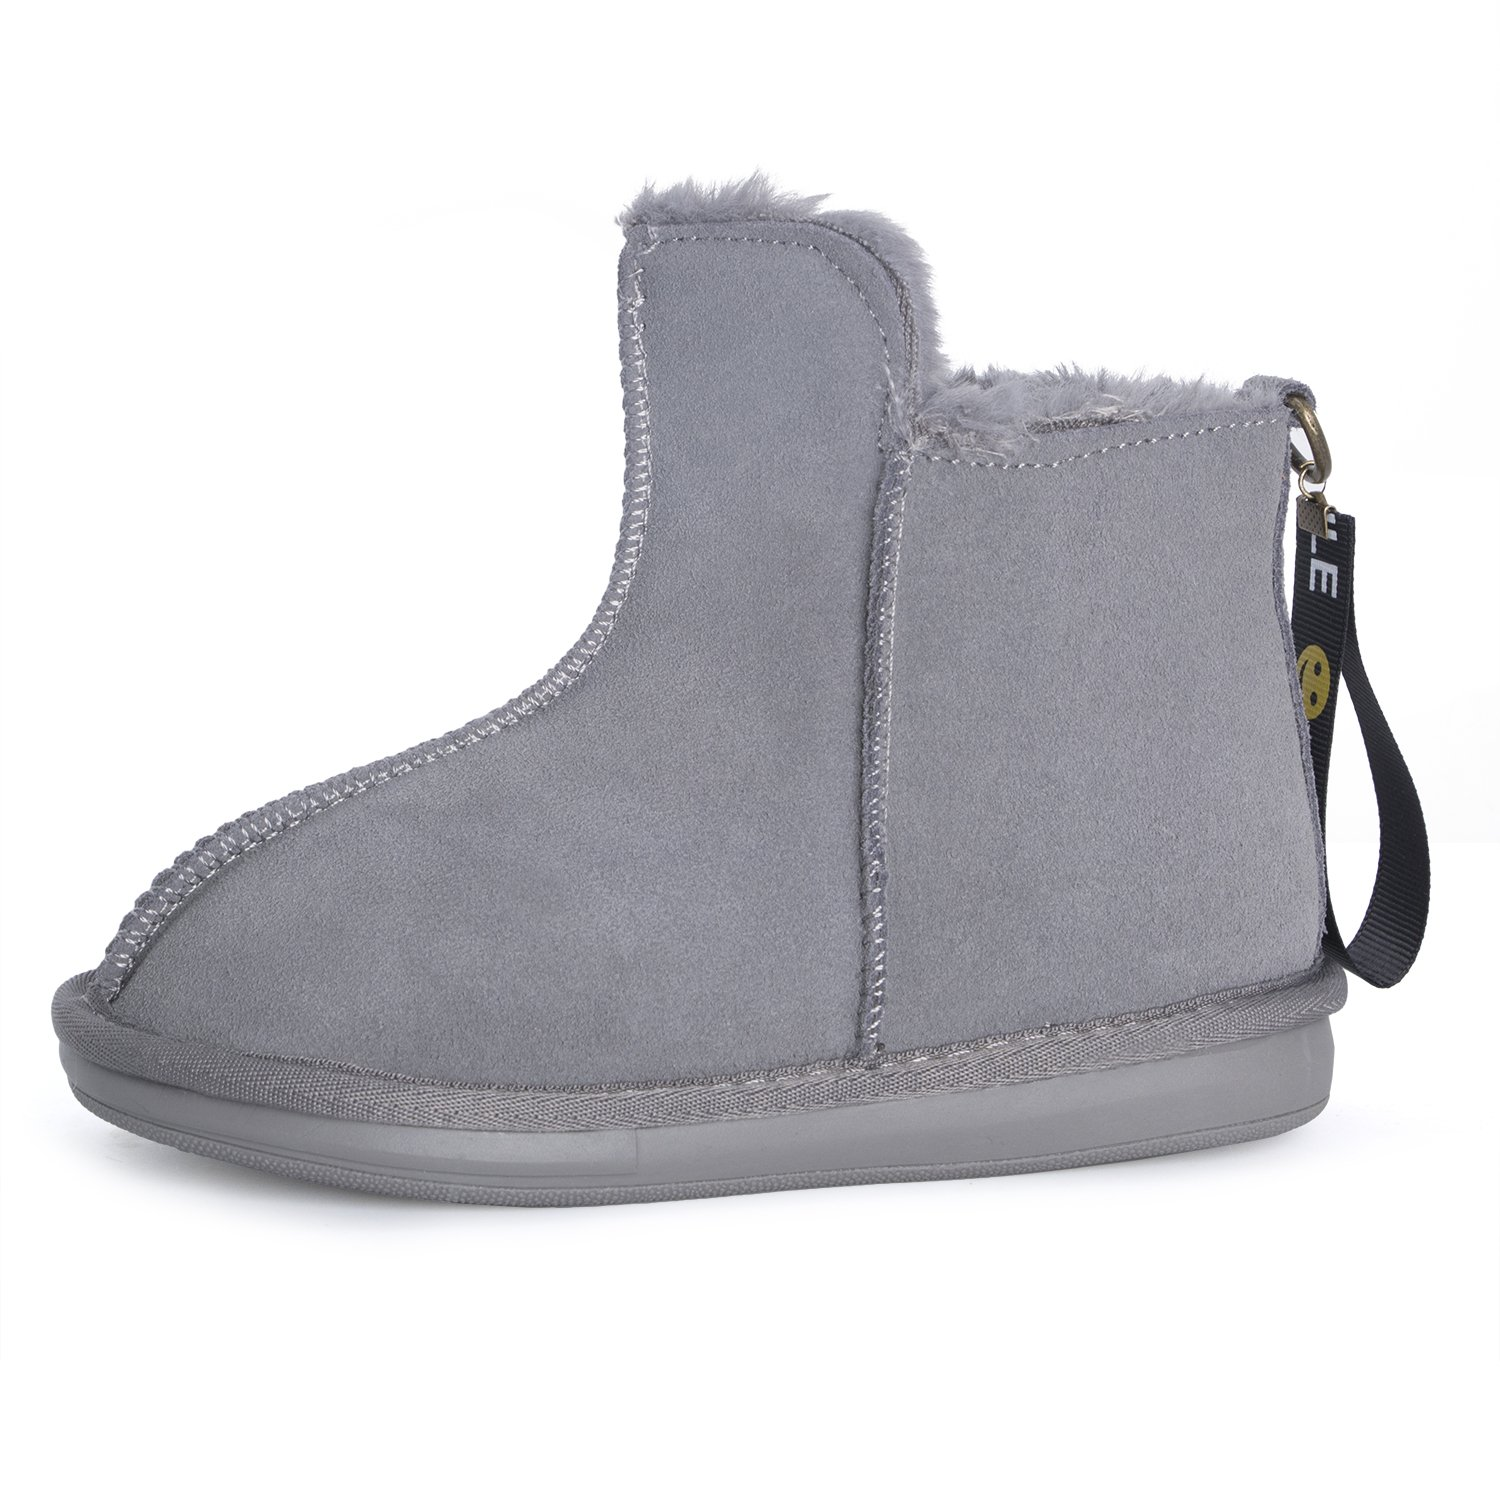 DARONGFENG Toddler Little Kid Winter Shoes Girls Boys Warm Outdoor Ankle Boots